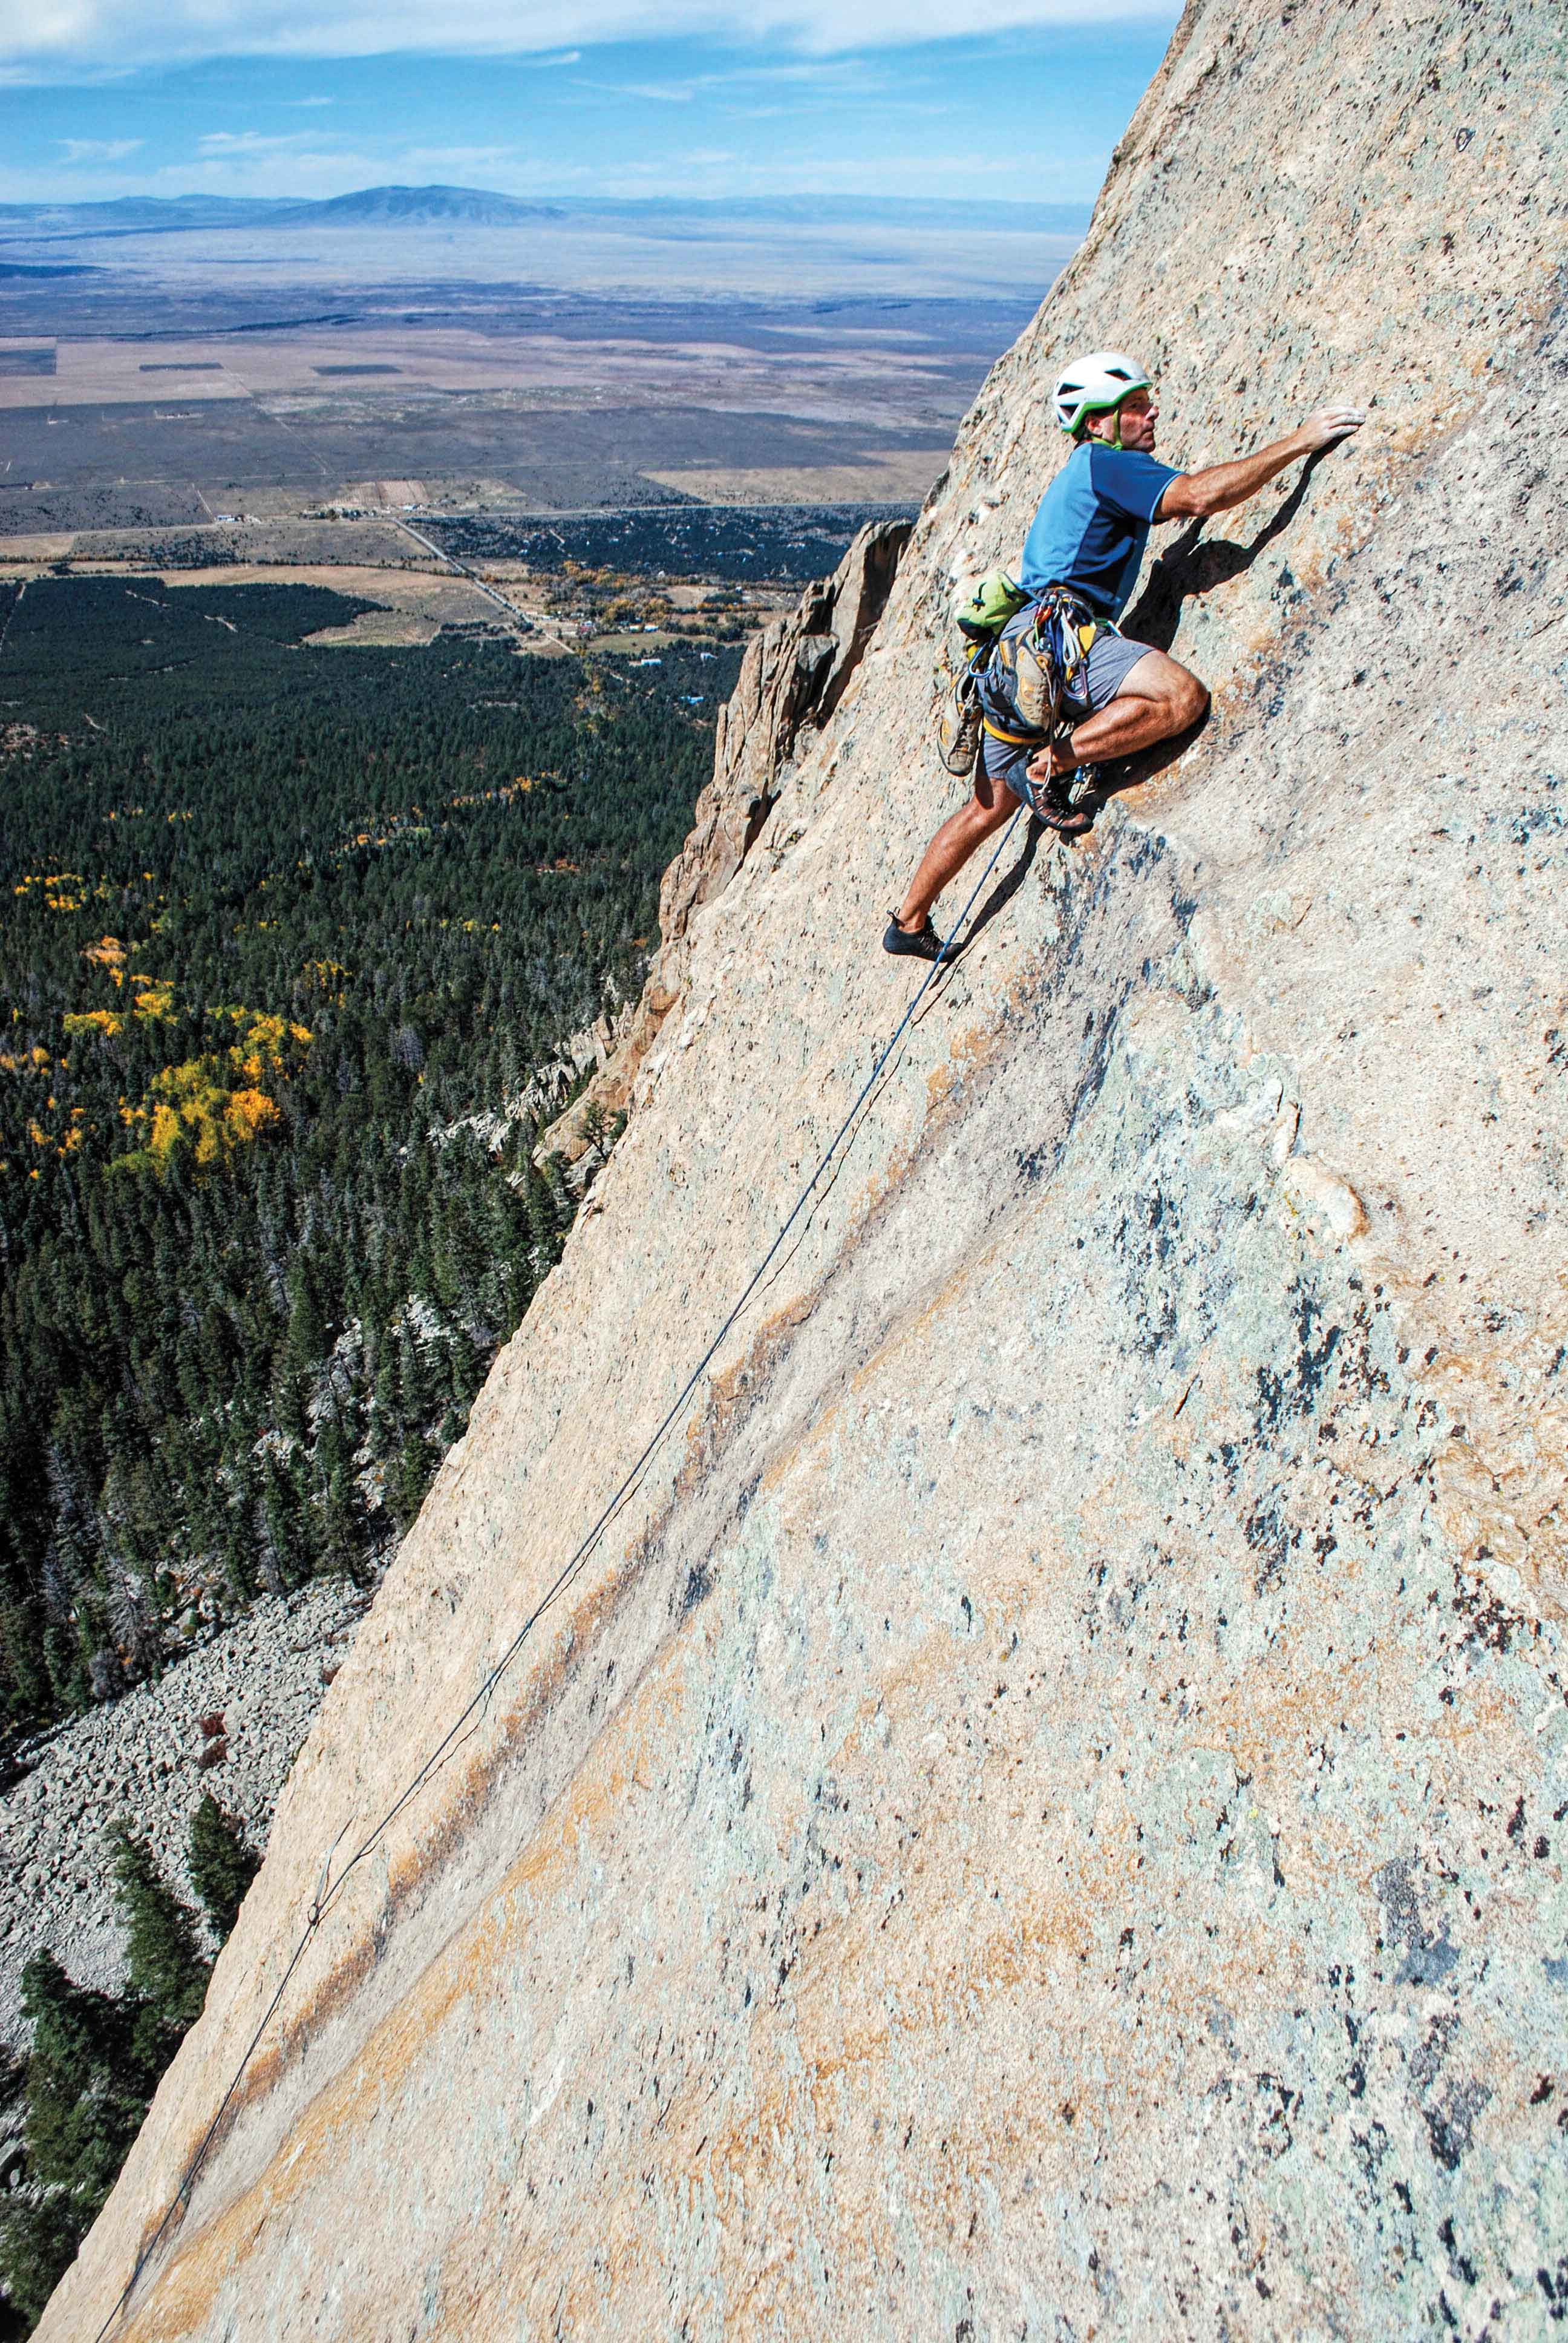 Dan Greenwald walks proud on the 5.10R fourth pith of Question of Balance (5.11) on the quality stone of Questa Dome, near Taos, New Mexico. Photo: Stewart Green.